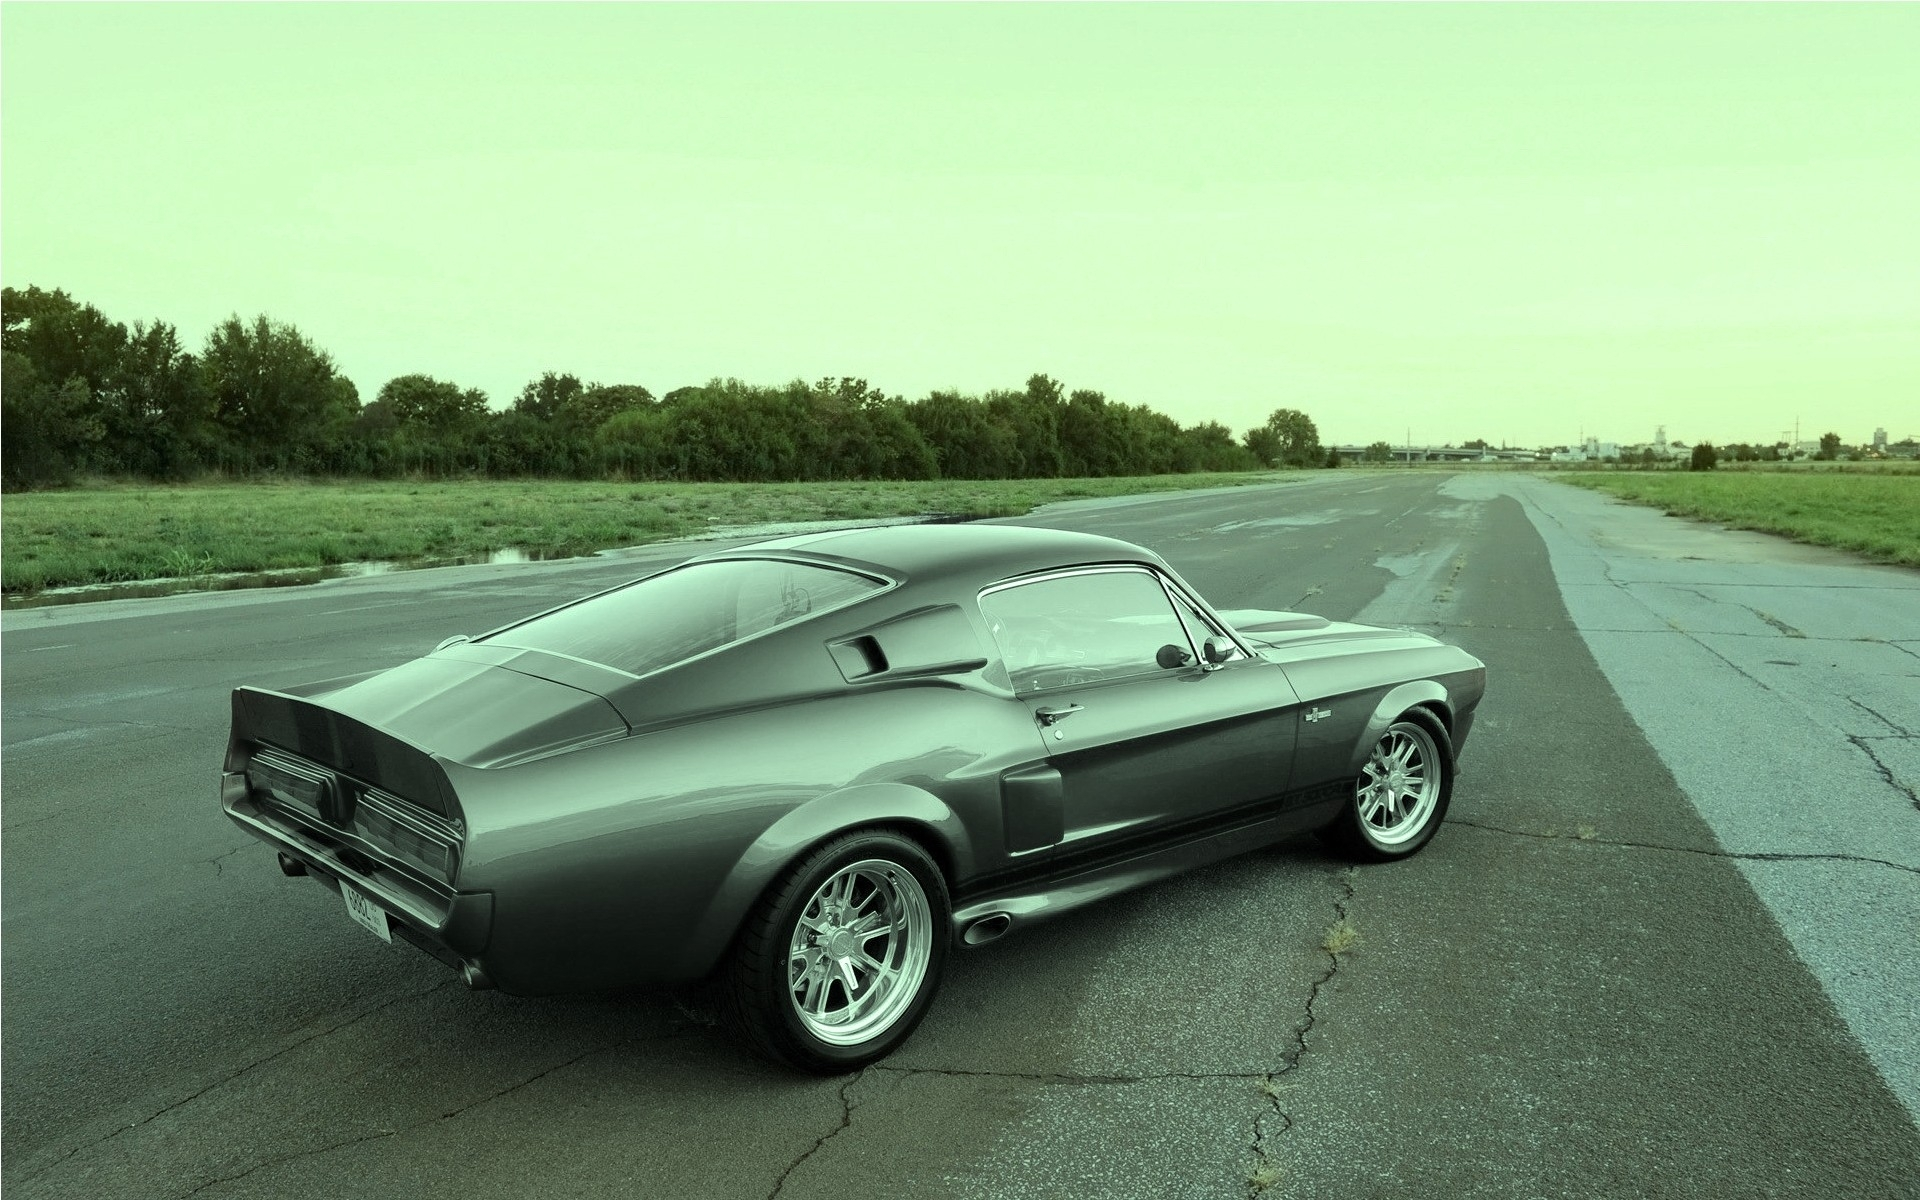 classic mustang muscle car wallpapers - Old Mustang Muscle Cars